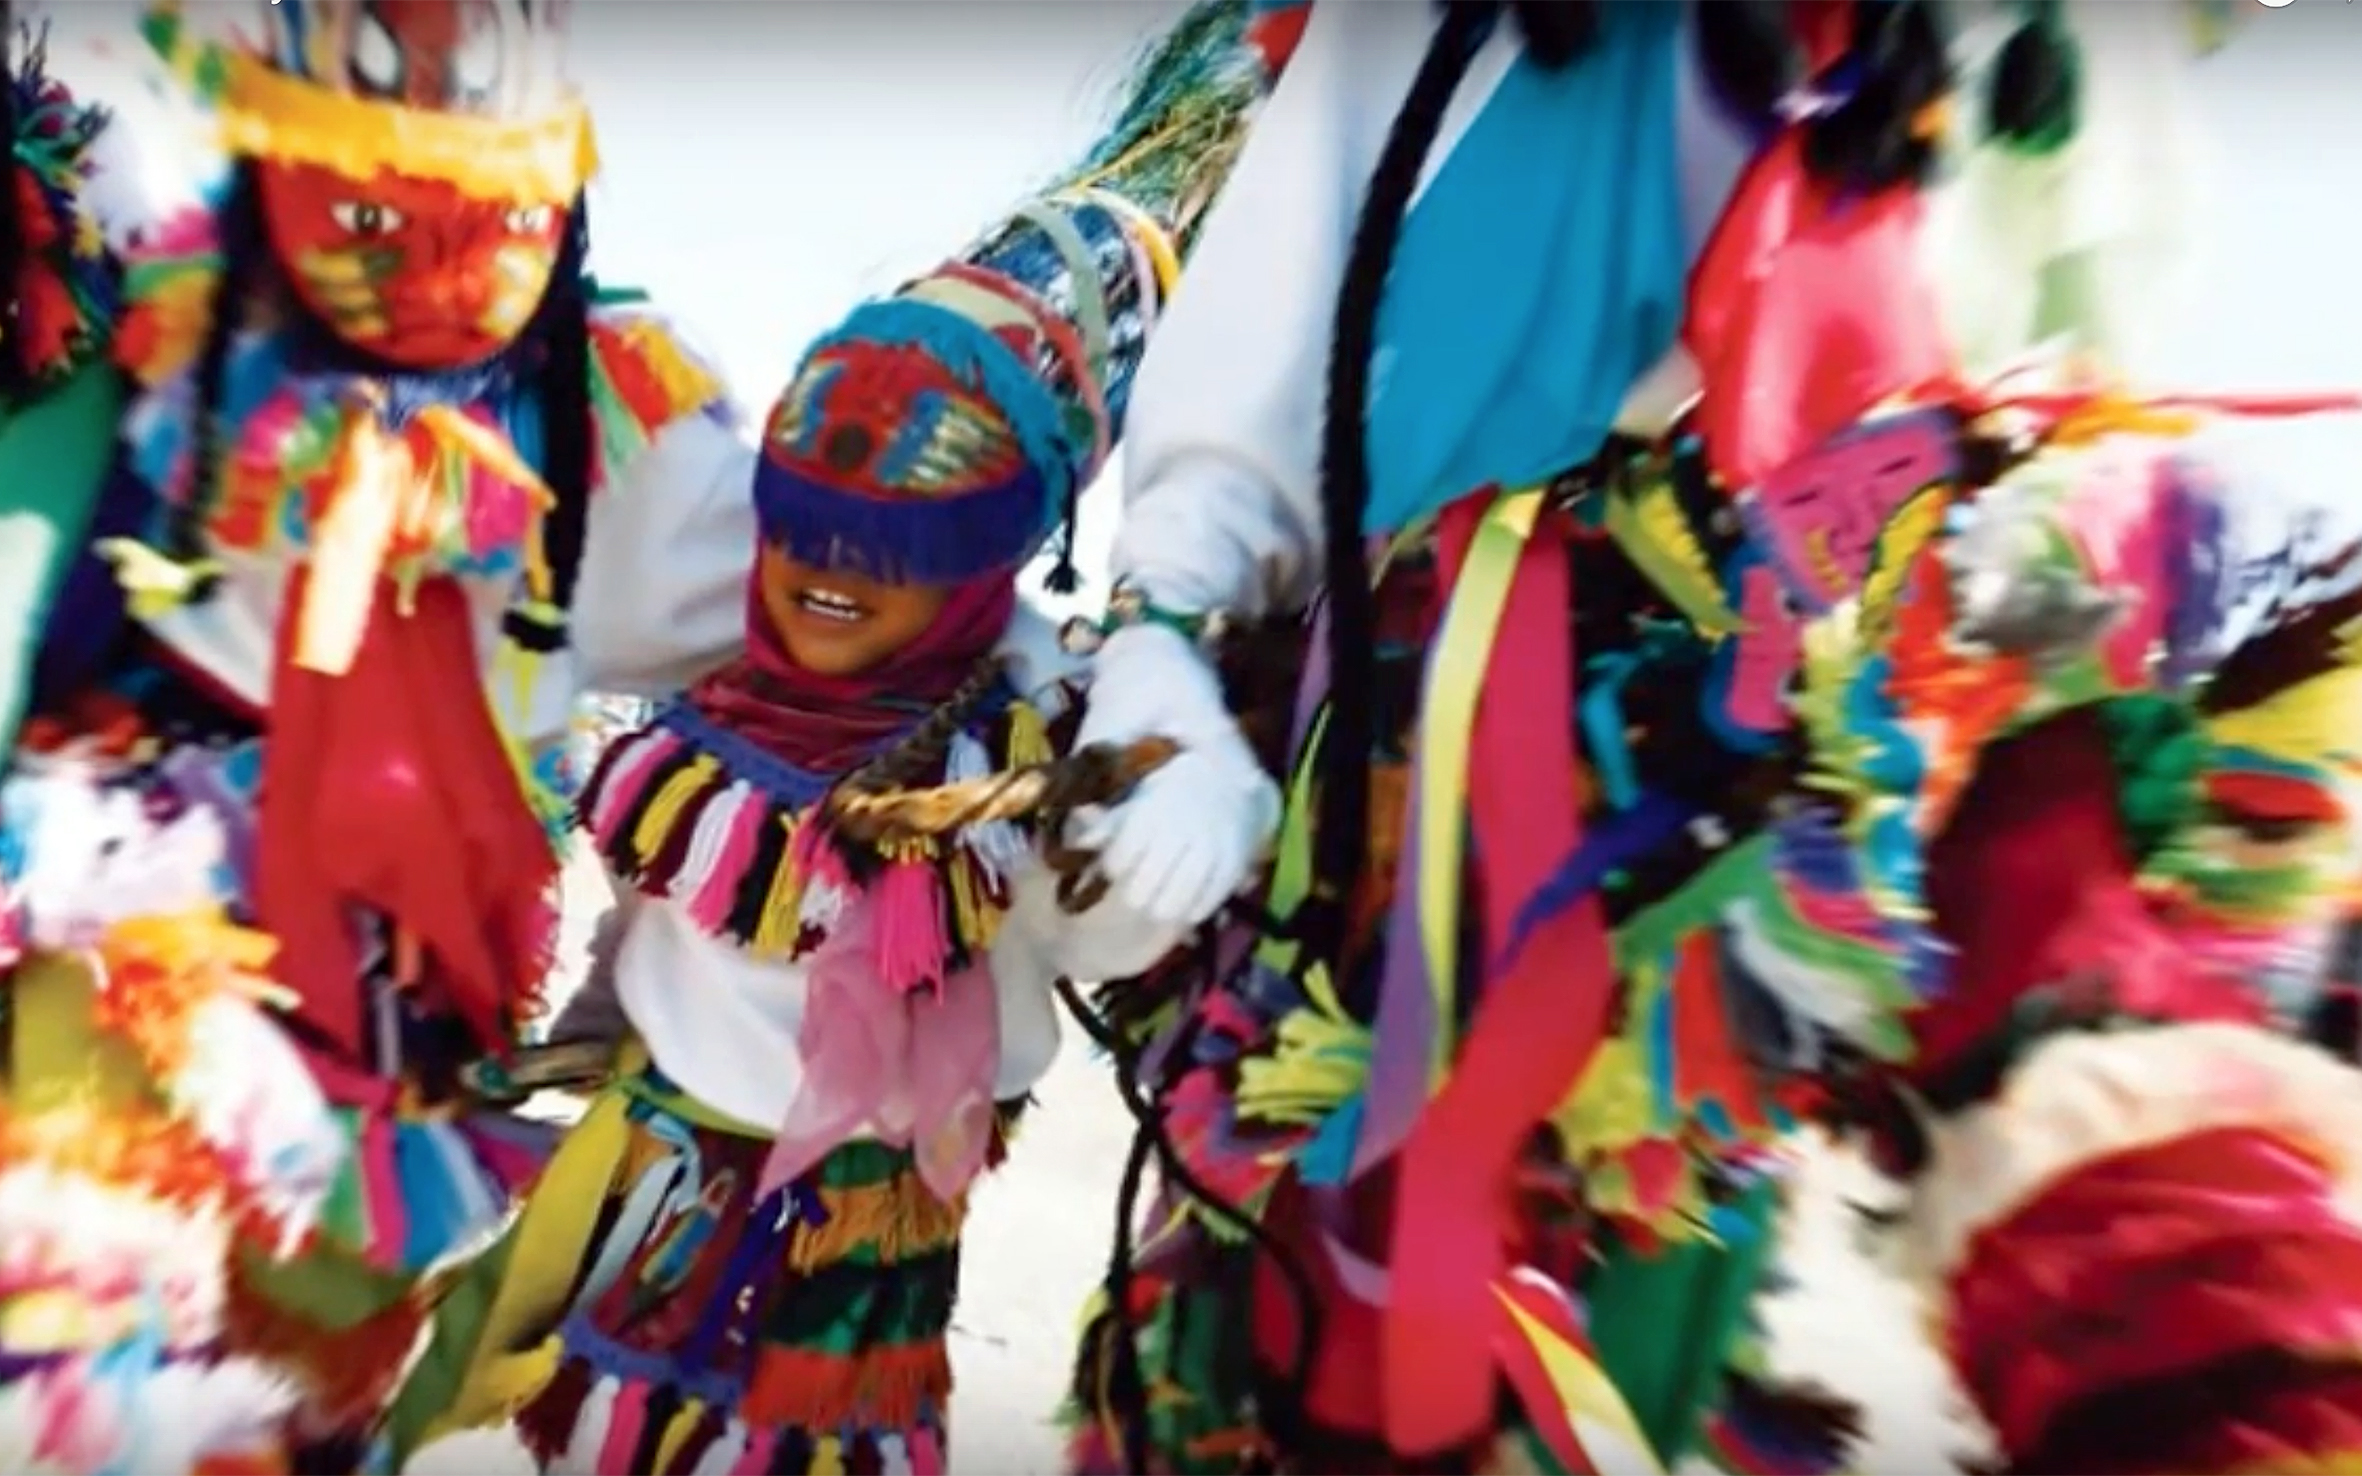 """336. GOMBEY / Bermuda - GOMBEY is a dance from Bermuda, mixture of British, West African and indigenous new-world cultures. It refers to a specific type of drums of African origin. Some also relate Gombay to a Bantu word standing for """"rhythm"""